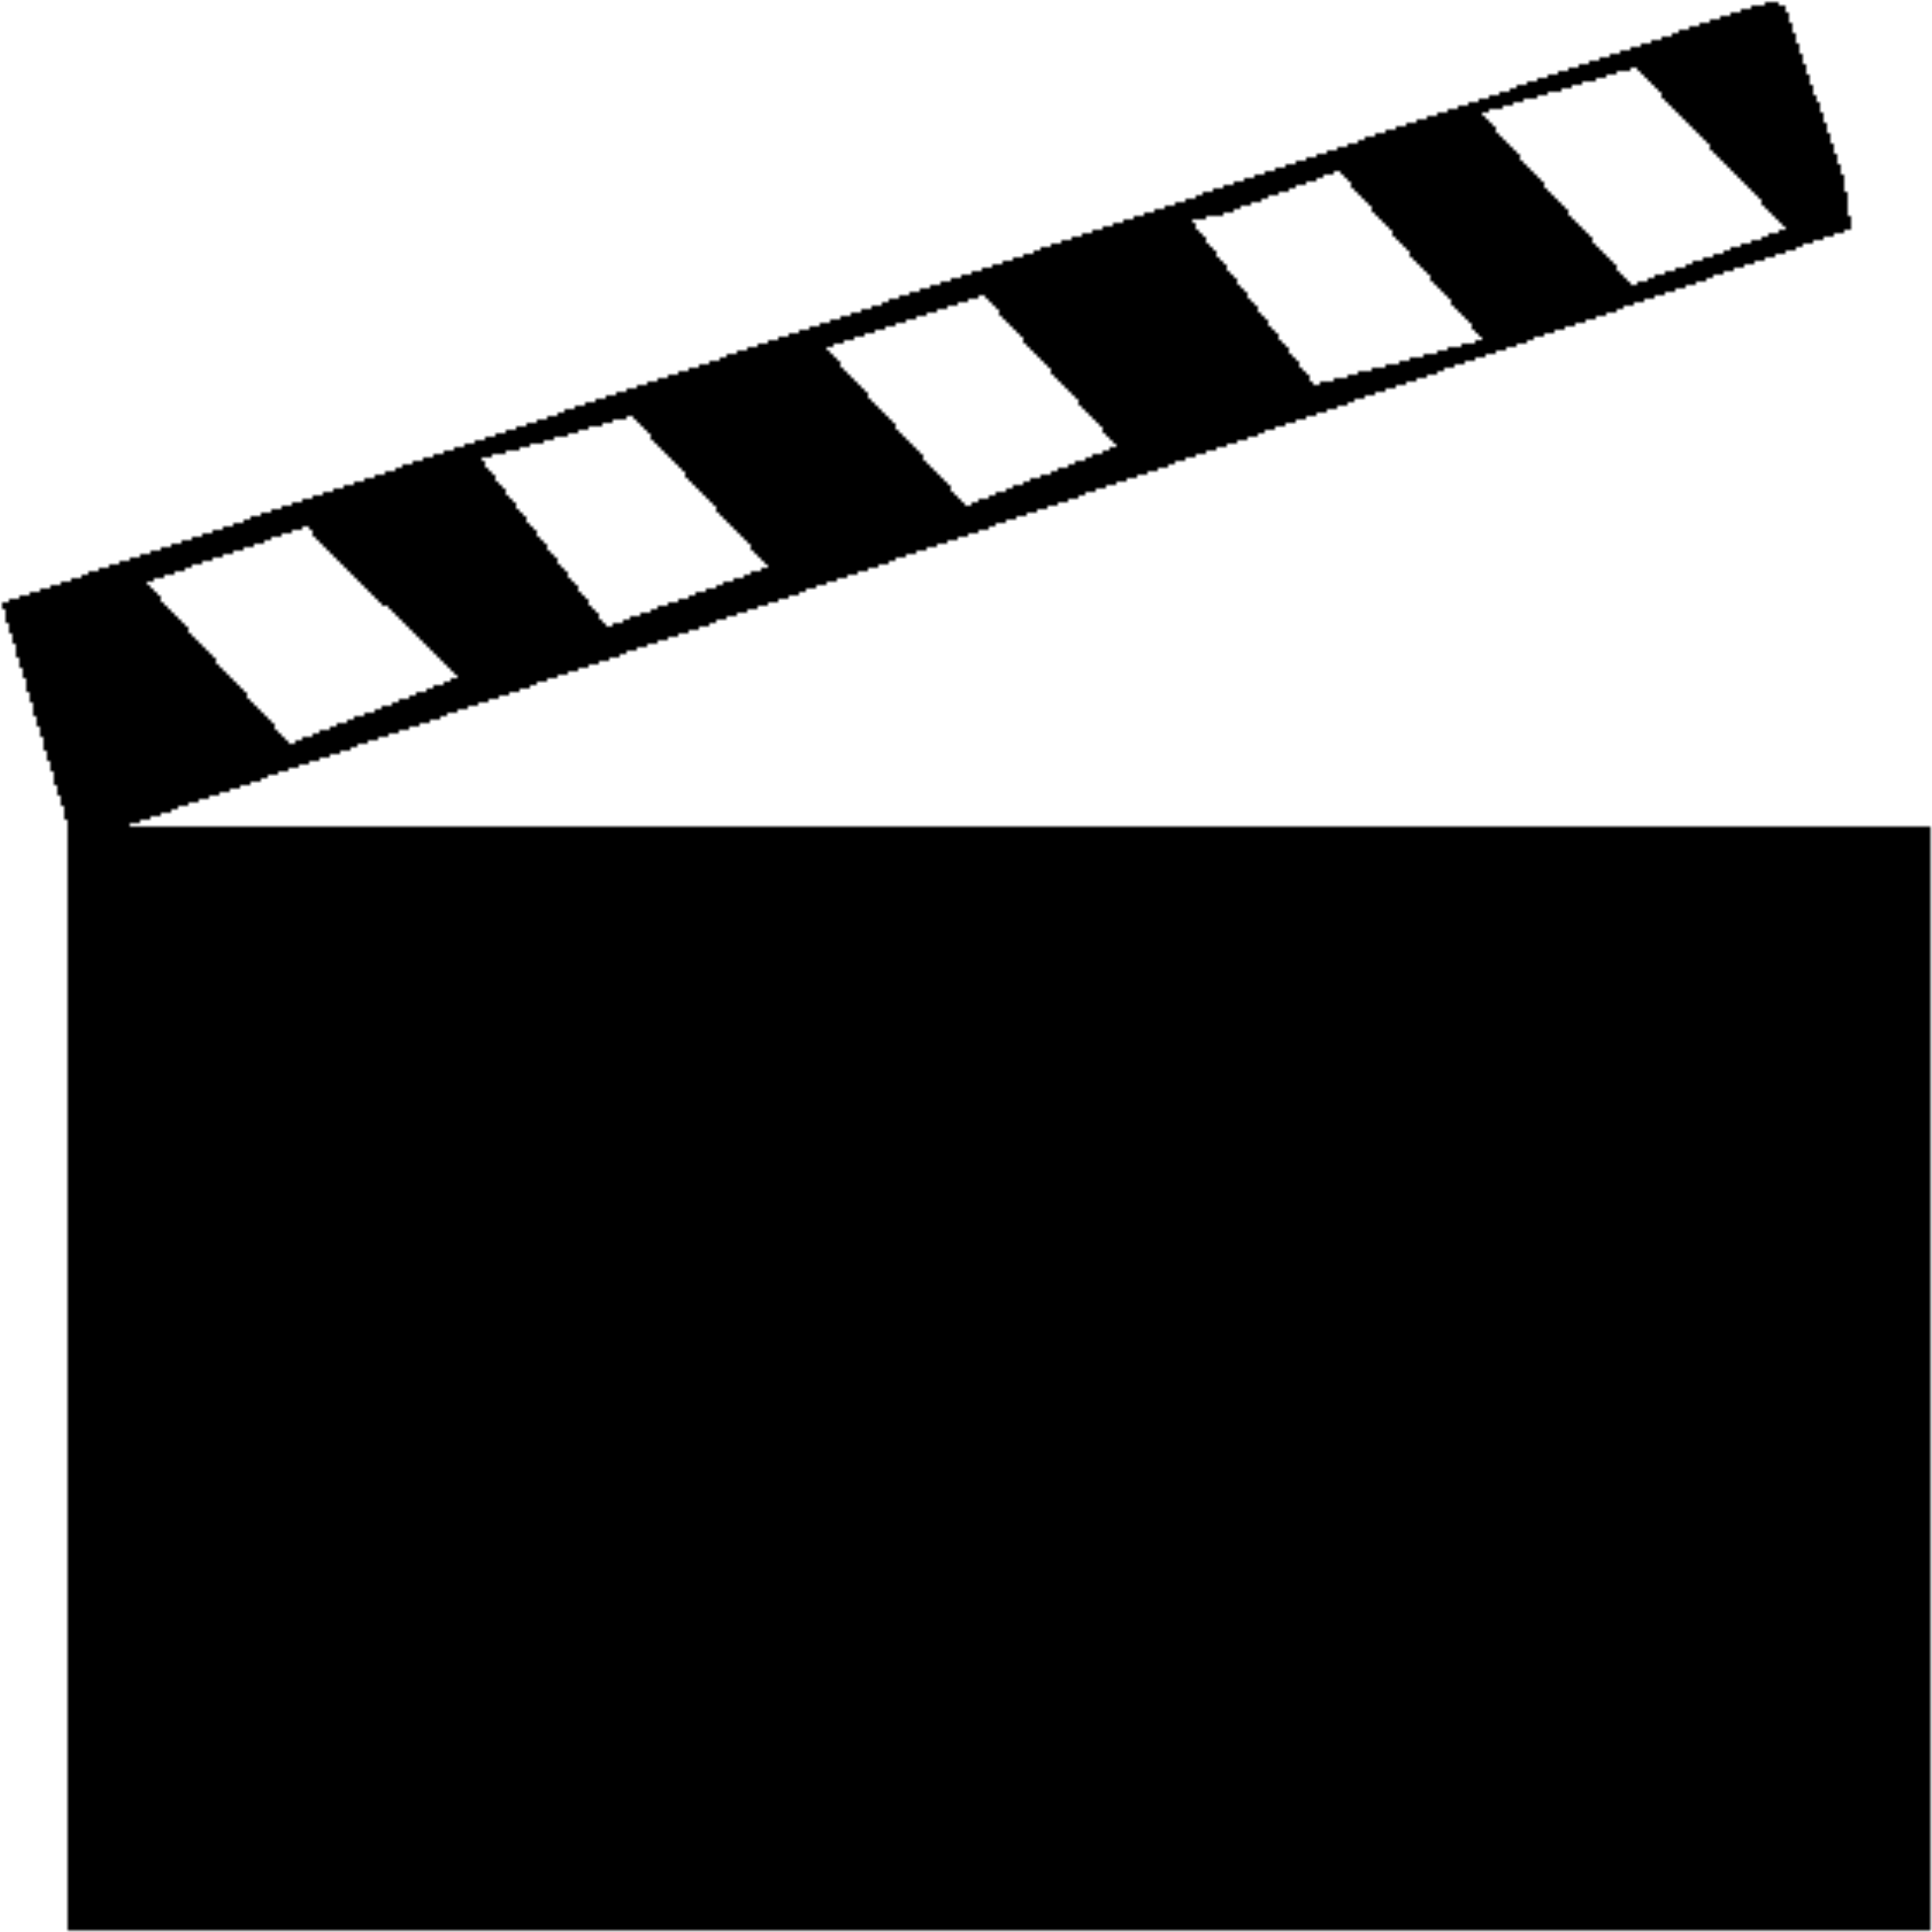 Clapperboard PNG - 4465